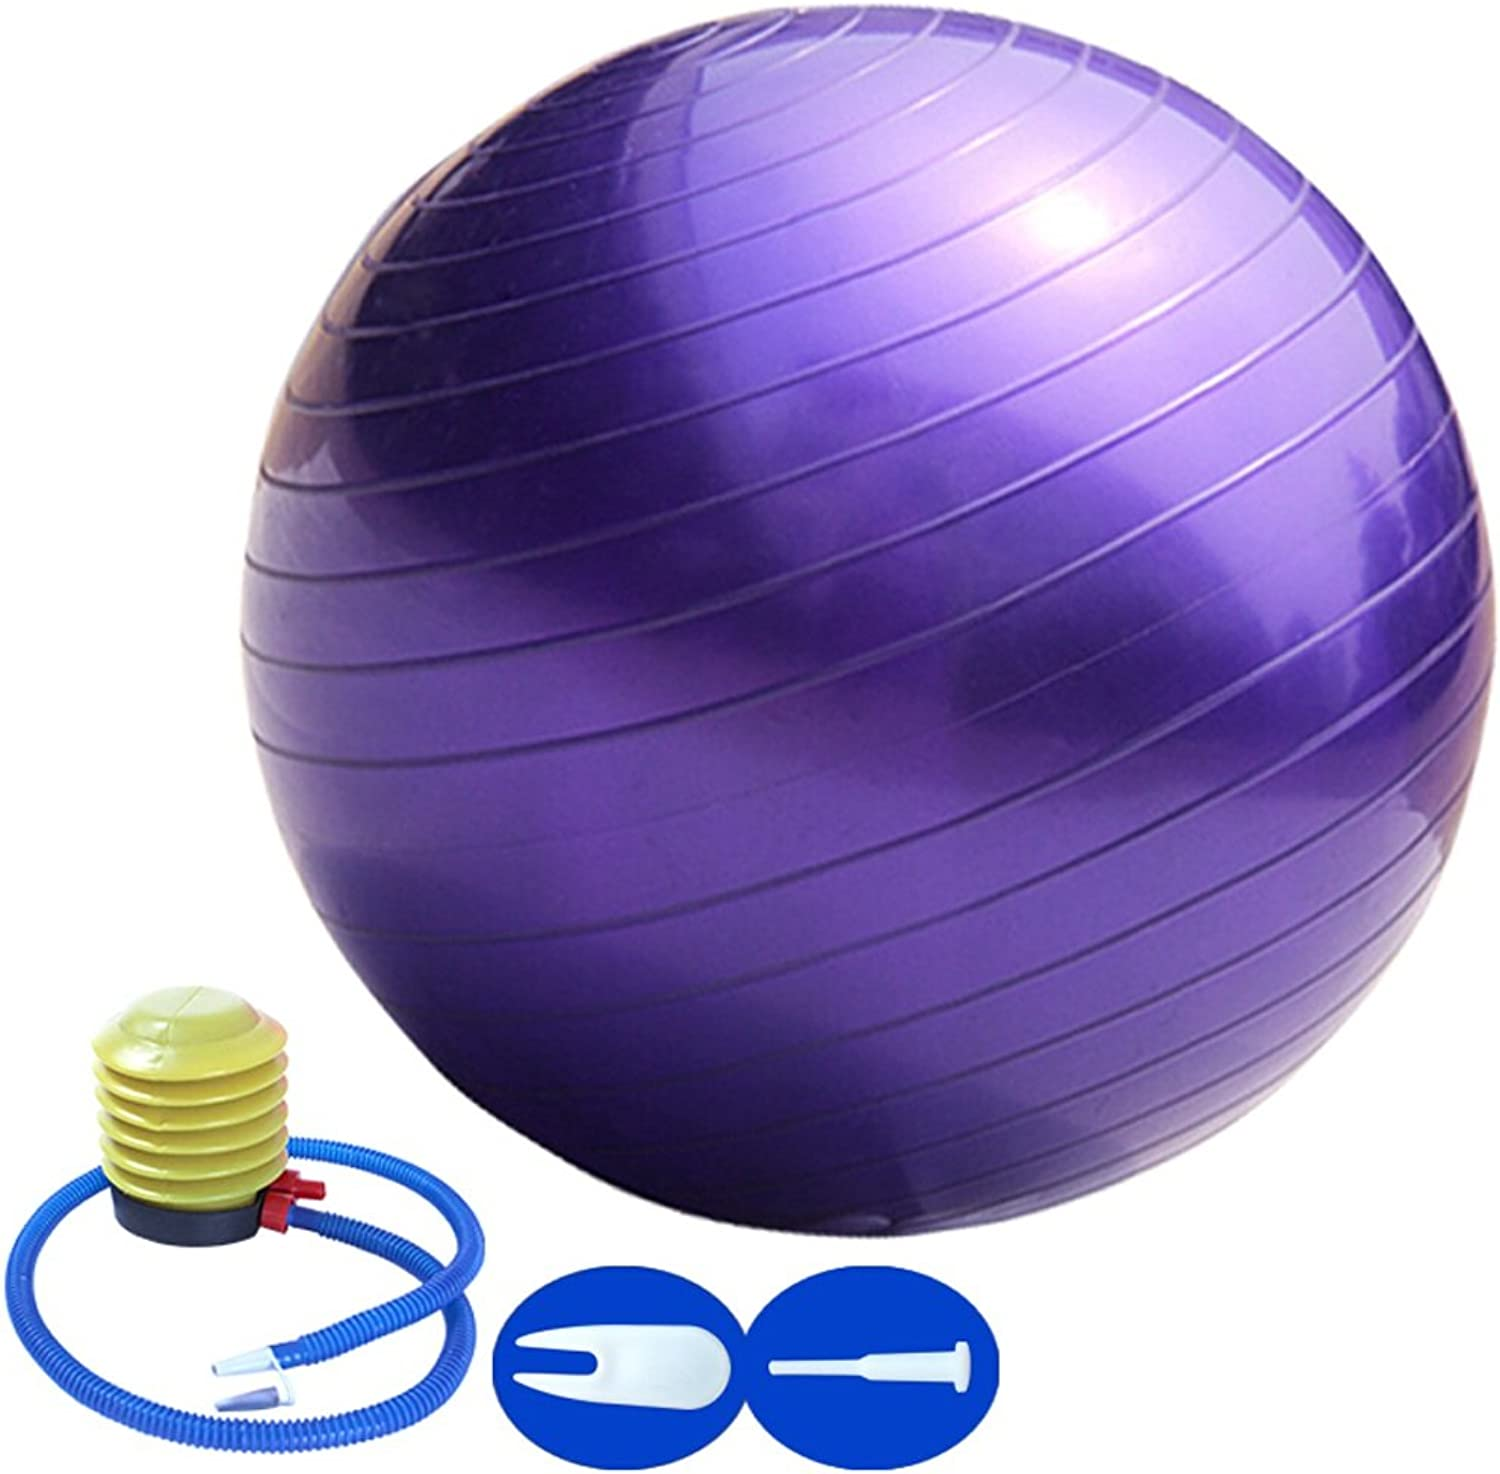 Anti-Burst & Anti-Slip Exercise Ball with Quick Pump Yoga Ball Extra Thick Heavy Duty Ball Chair Gym Quality Fitness Yoga Swiss Ball with Foot Pump Professional Multifunction Birthing Ball